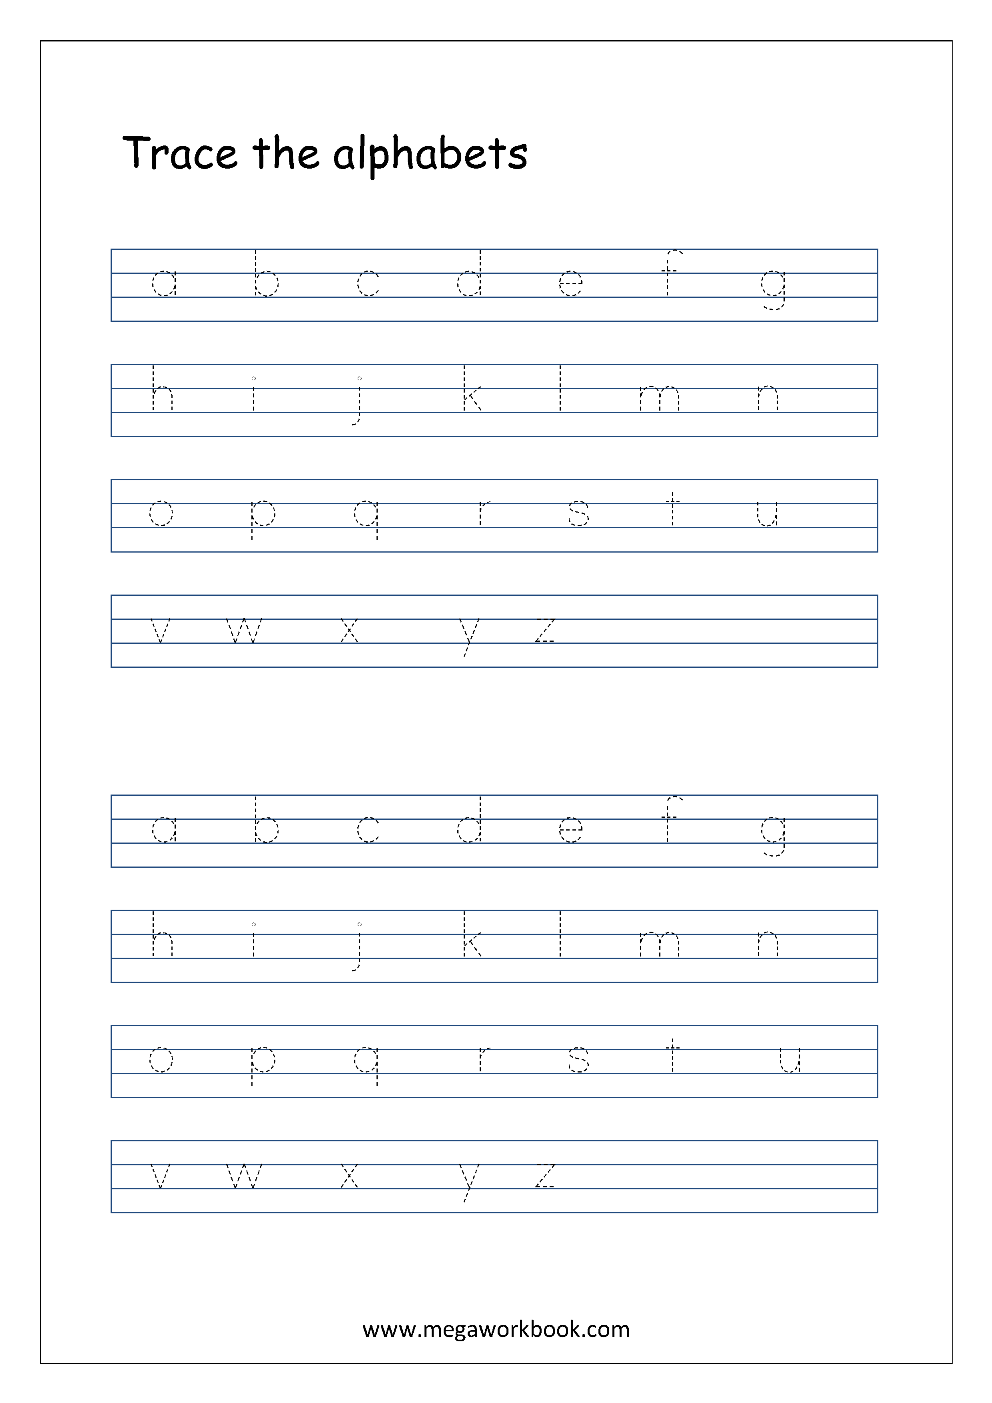 Free English Worksheets - Alphabet Tracing (Small Letters) - MegaWorkbook